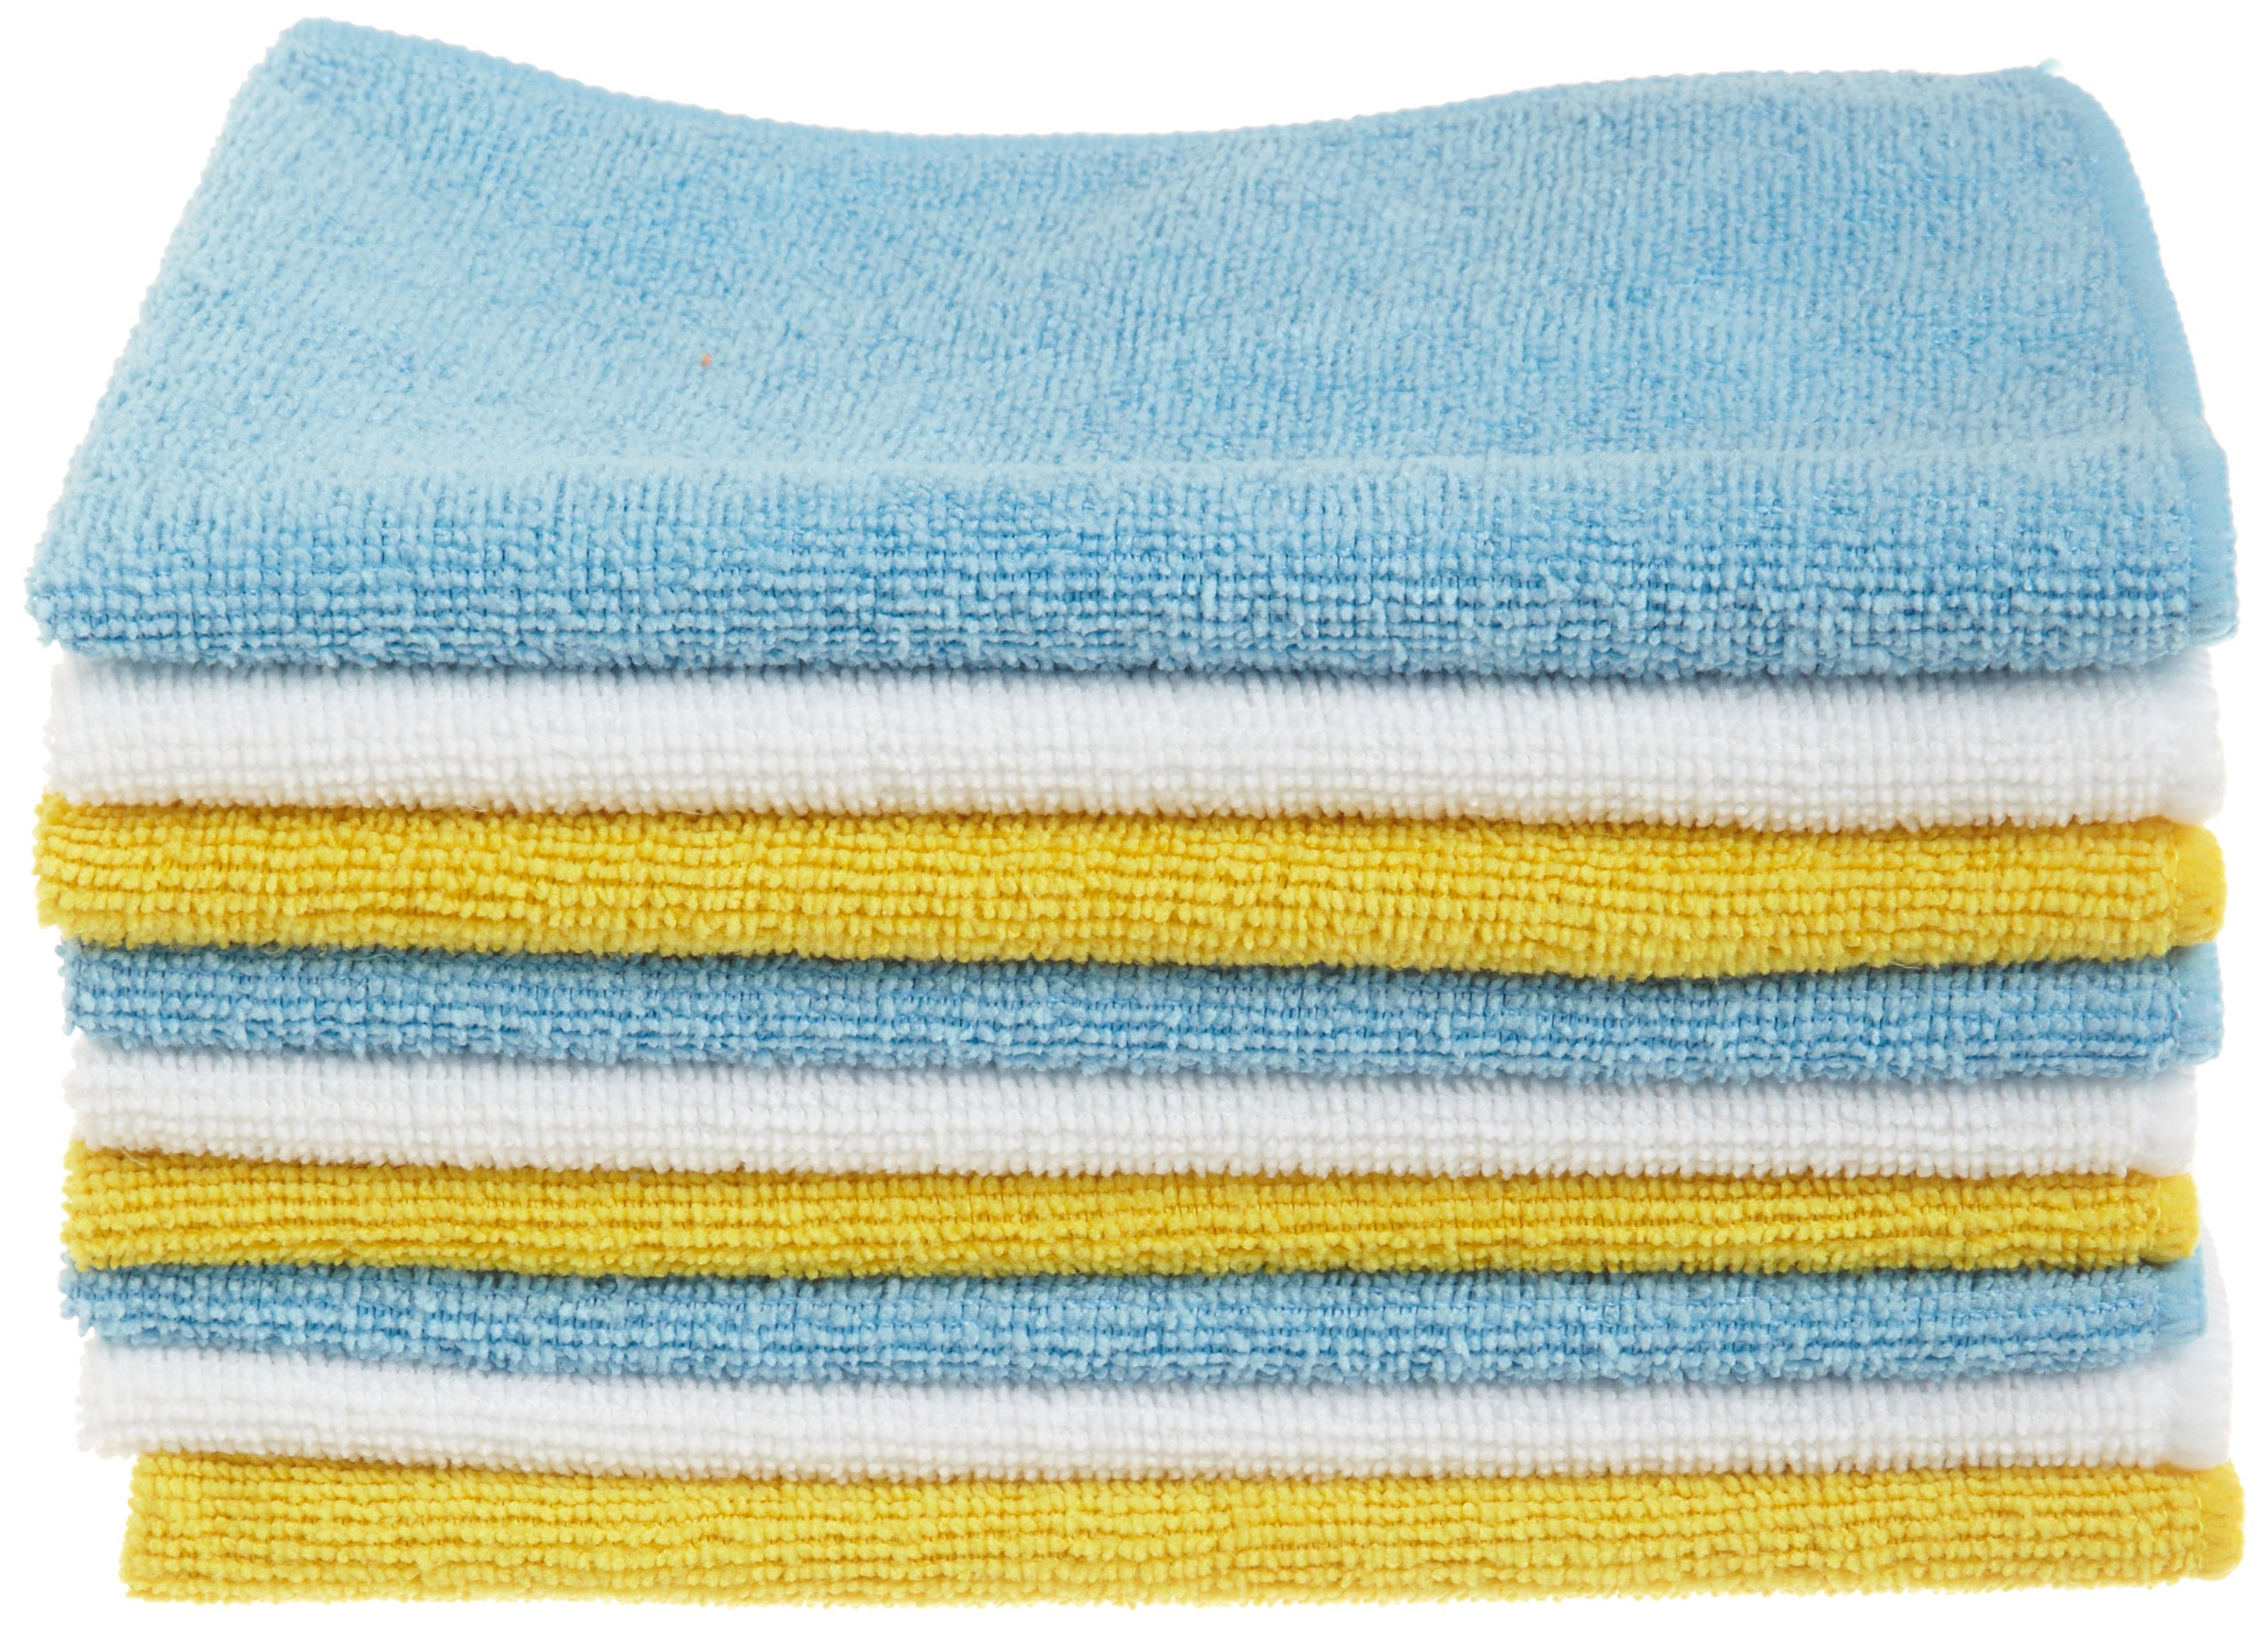 amazonbasics-microfiber-cleaning-cloth-24-pack-best-car-clean-wash-products-reviews